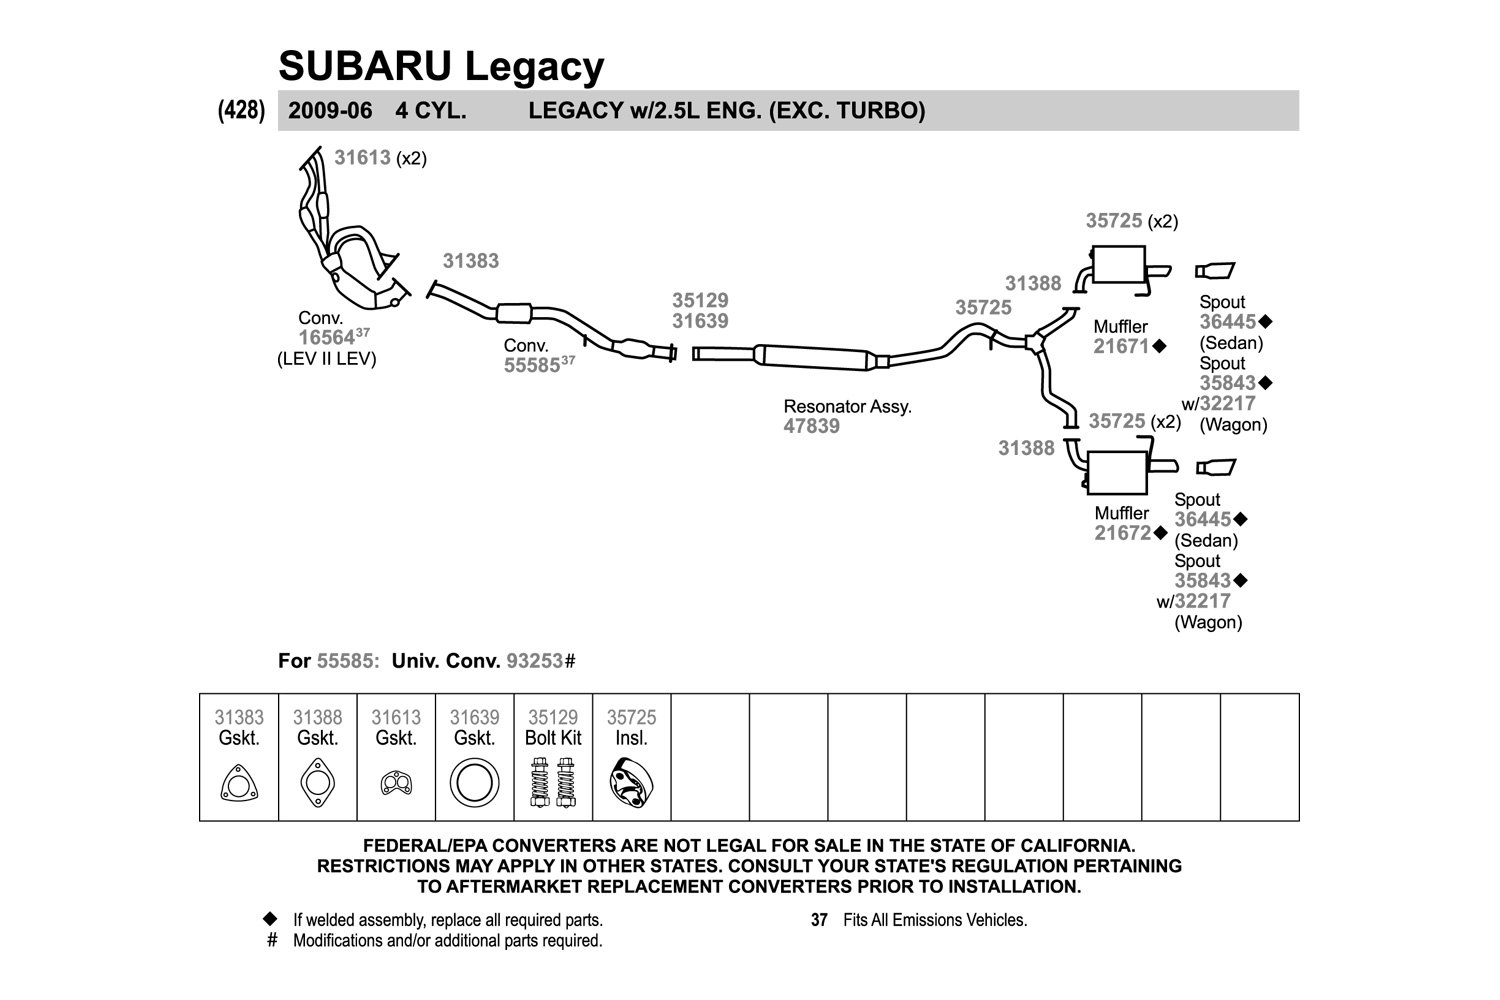 Subaru Legacy Exhaust System Diagram Basic Guide Wiring Diagram \u2022 Subaru  Tribeca Engine Diagram 2002 Subaru Legacy Exhaust Diagram